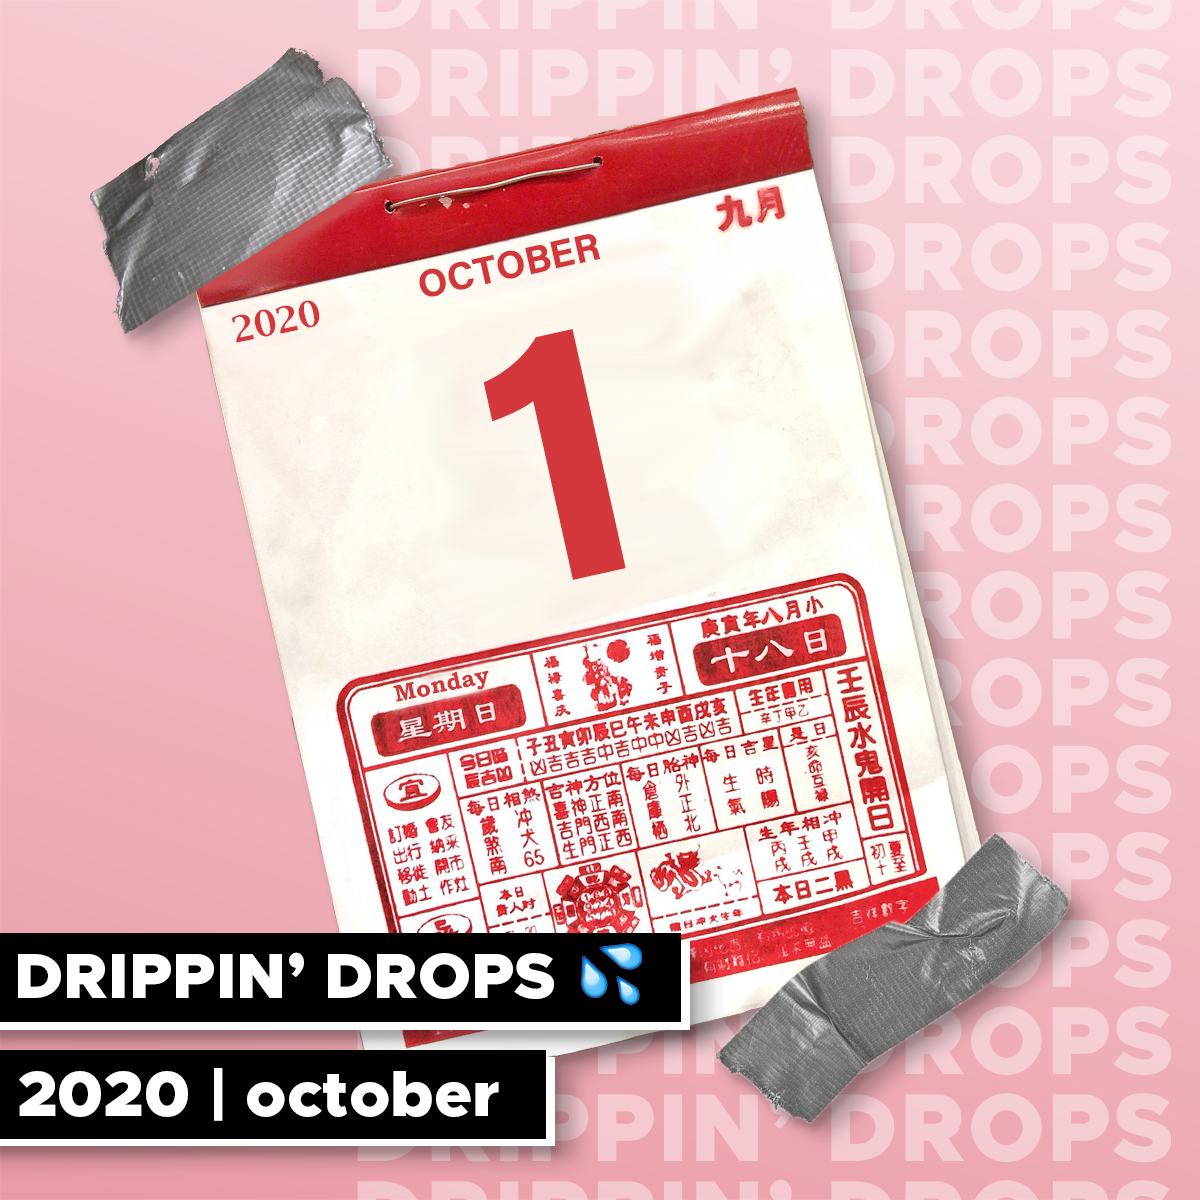 DRIPPIN' DROPS